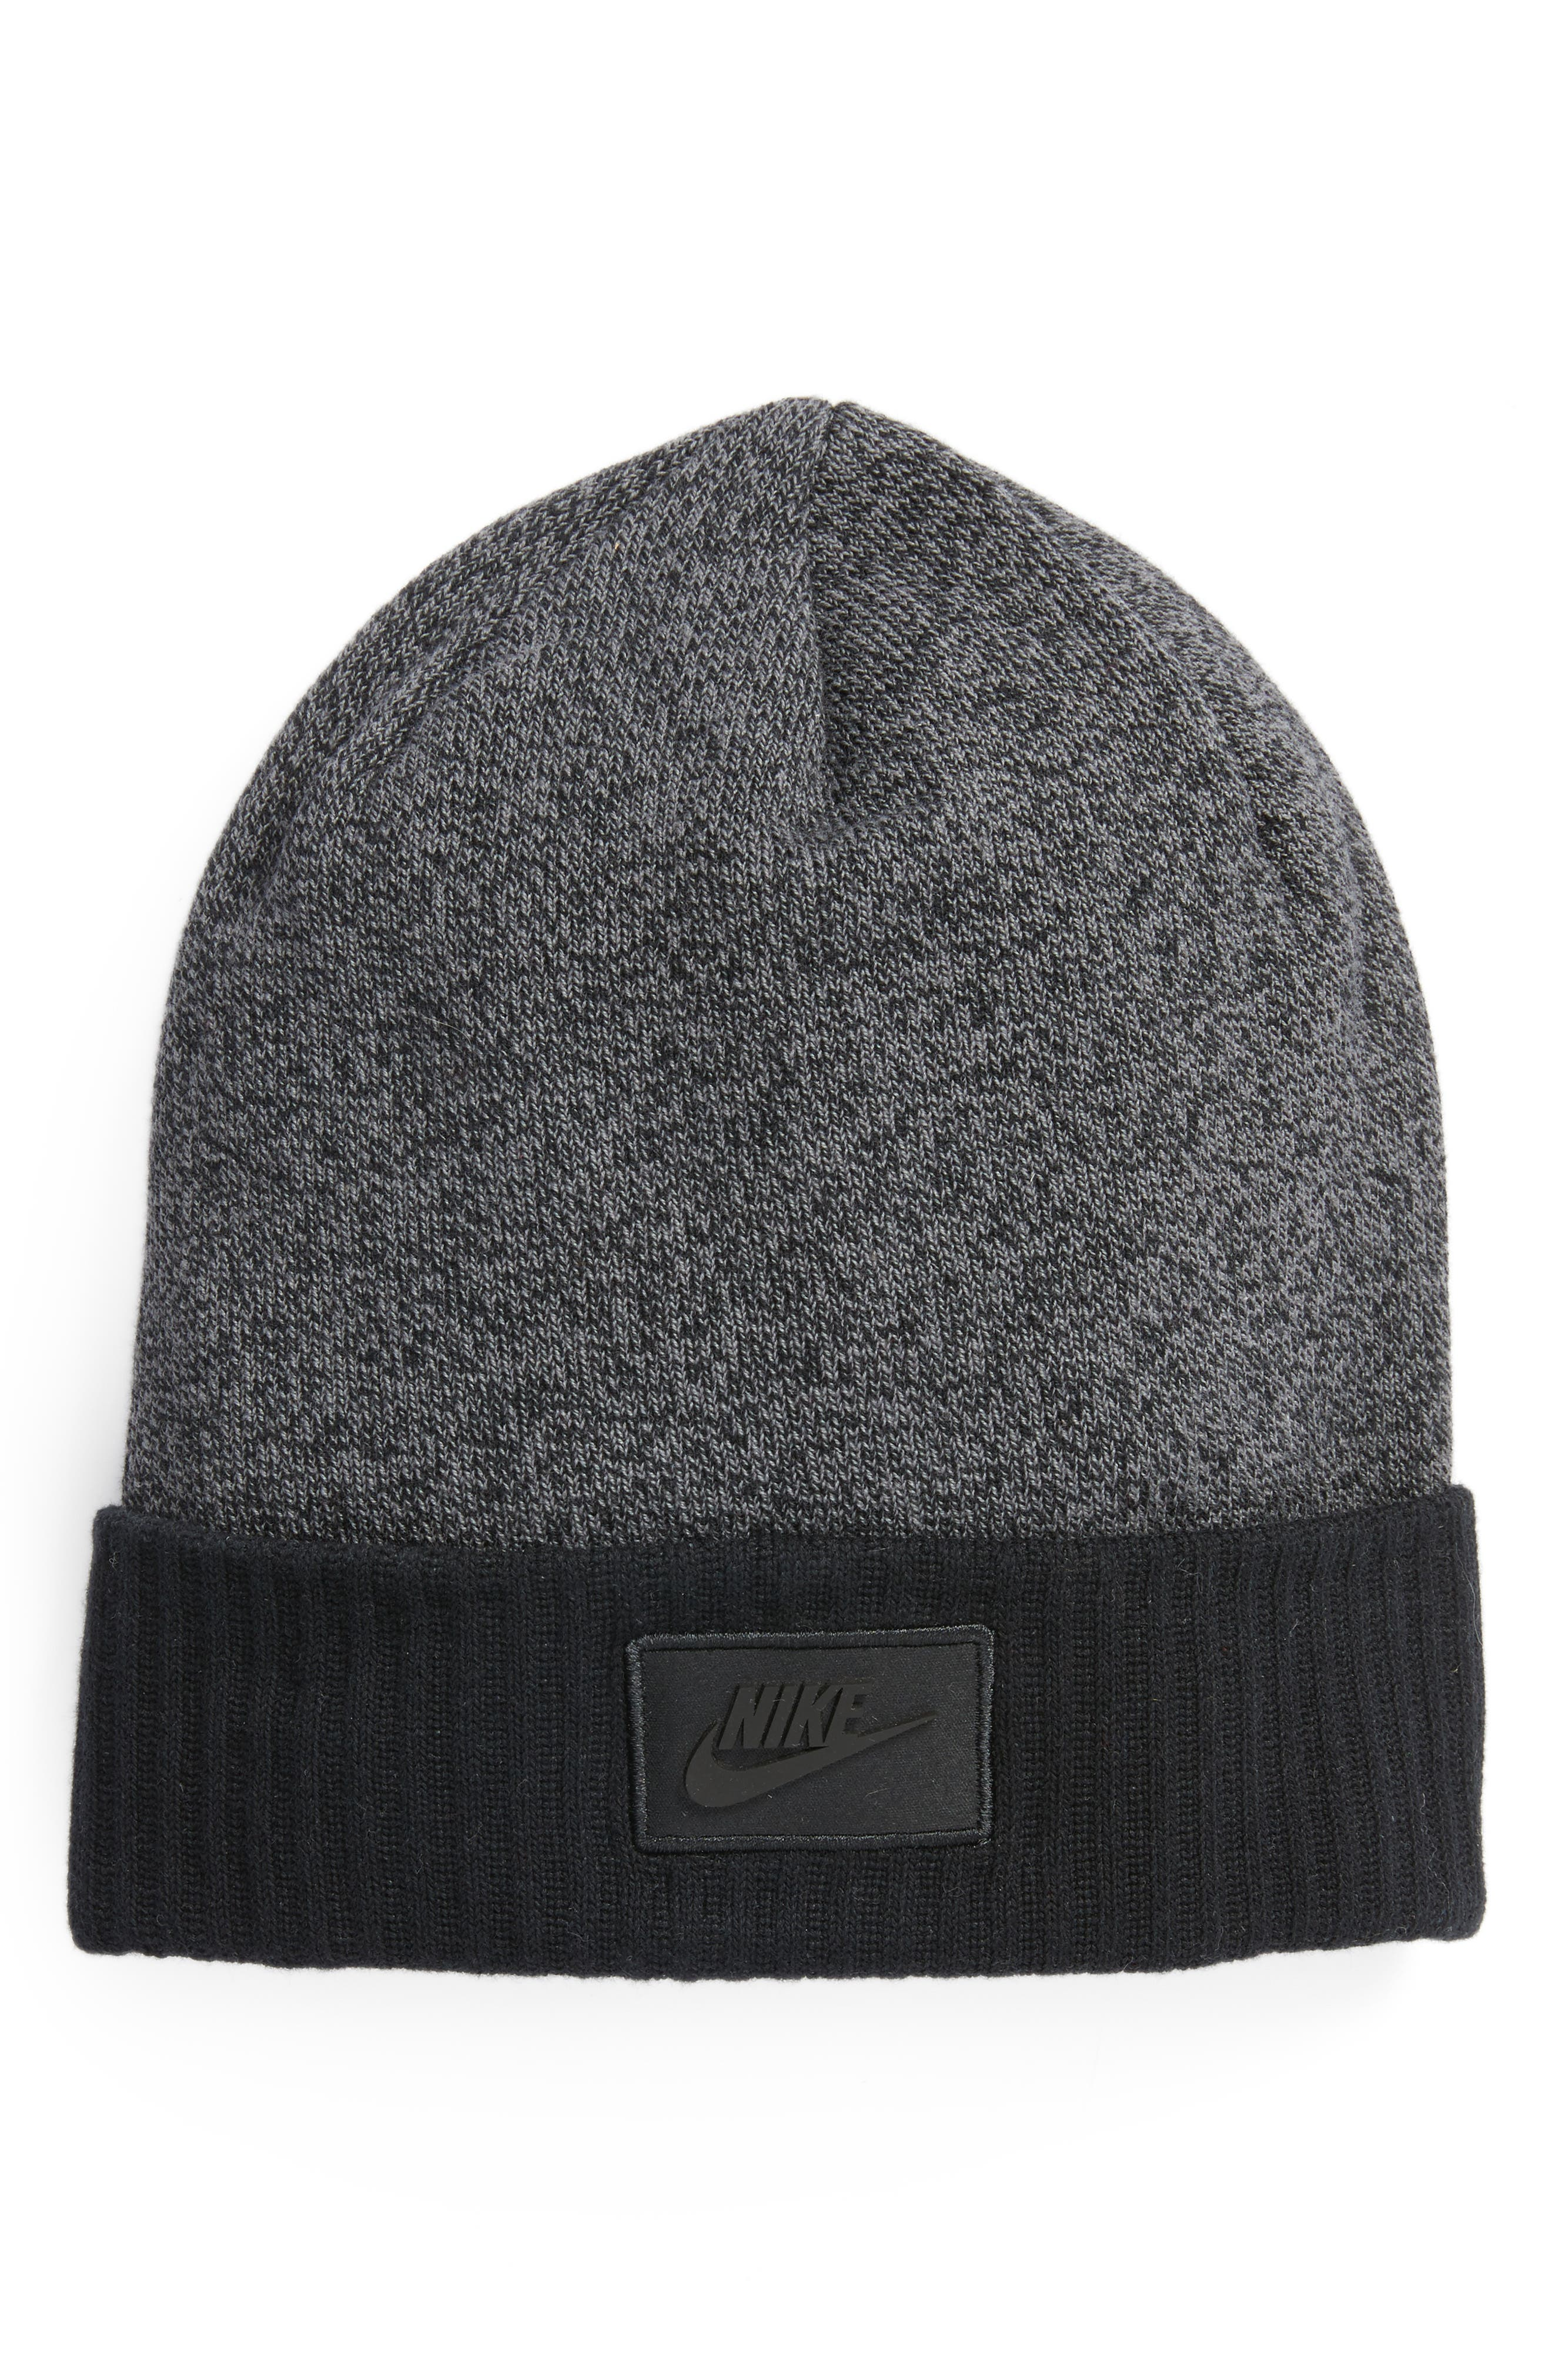 Alternate Image 1 Selected - Nike Knit Beanie